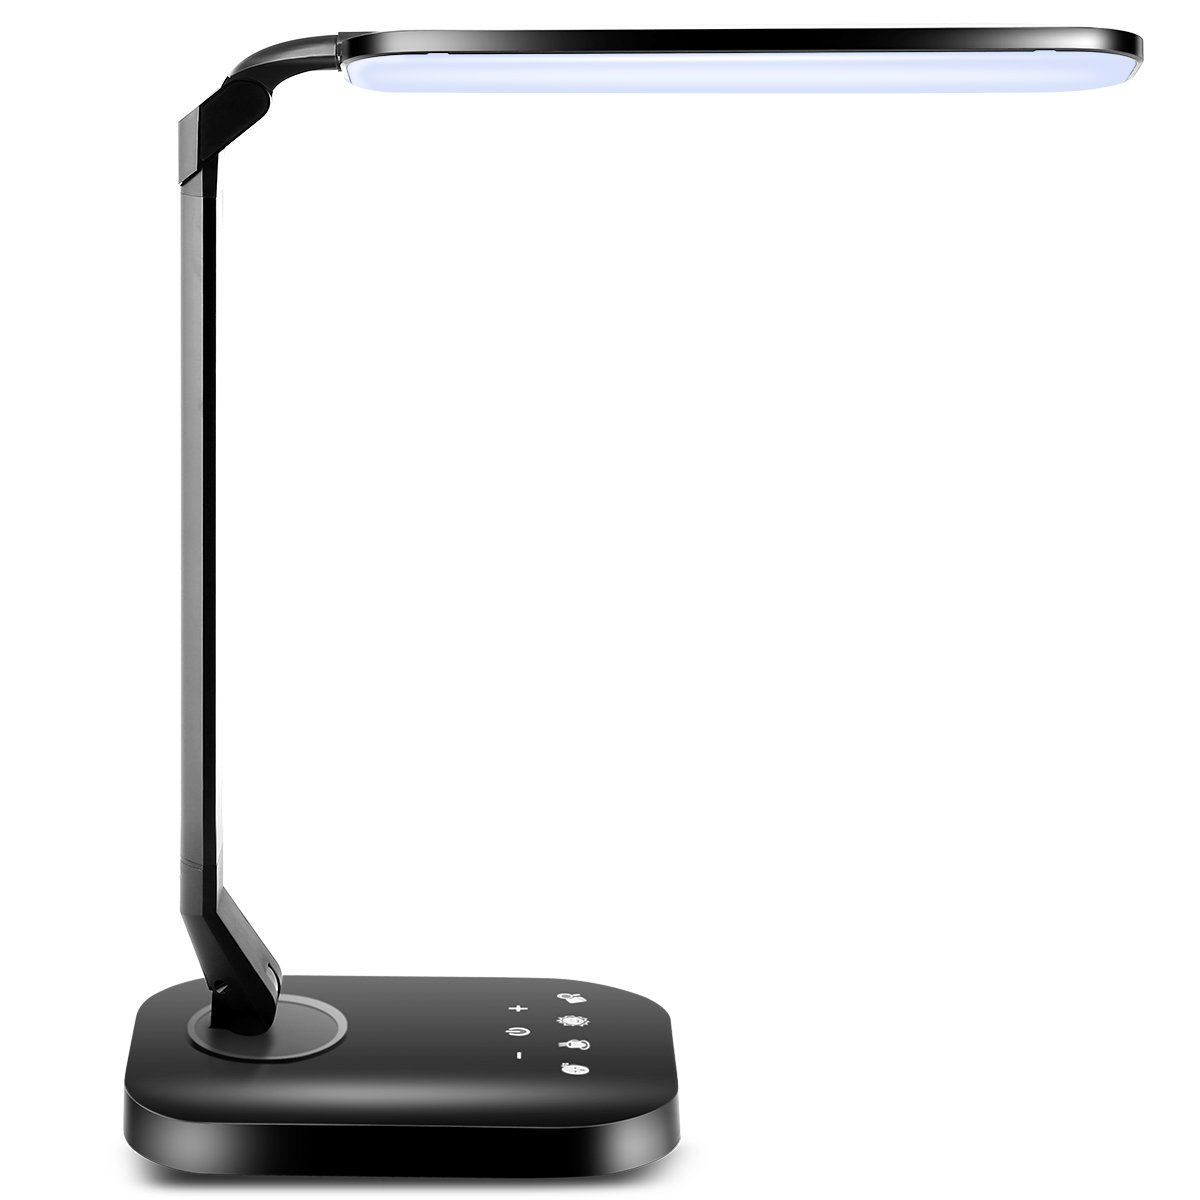 TomCare LED Desk Lamp with USB Charging Port 15W Dimmable Desk Lamp Flexible Table Lamps Office Lamp Reading Lamp 4 Lighting Modes 5-Level Brightness Touch Control Memory Function for Office Home